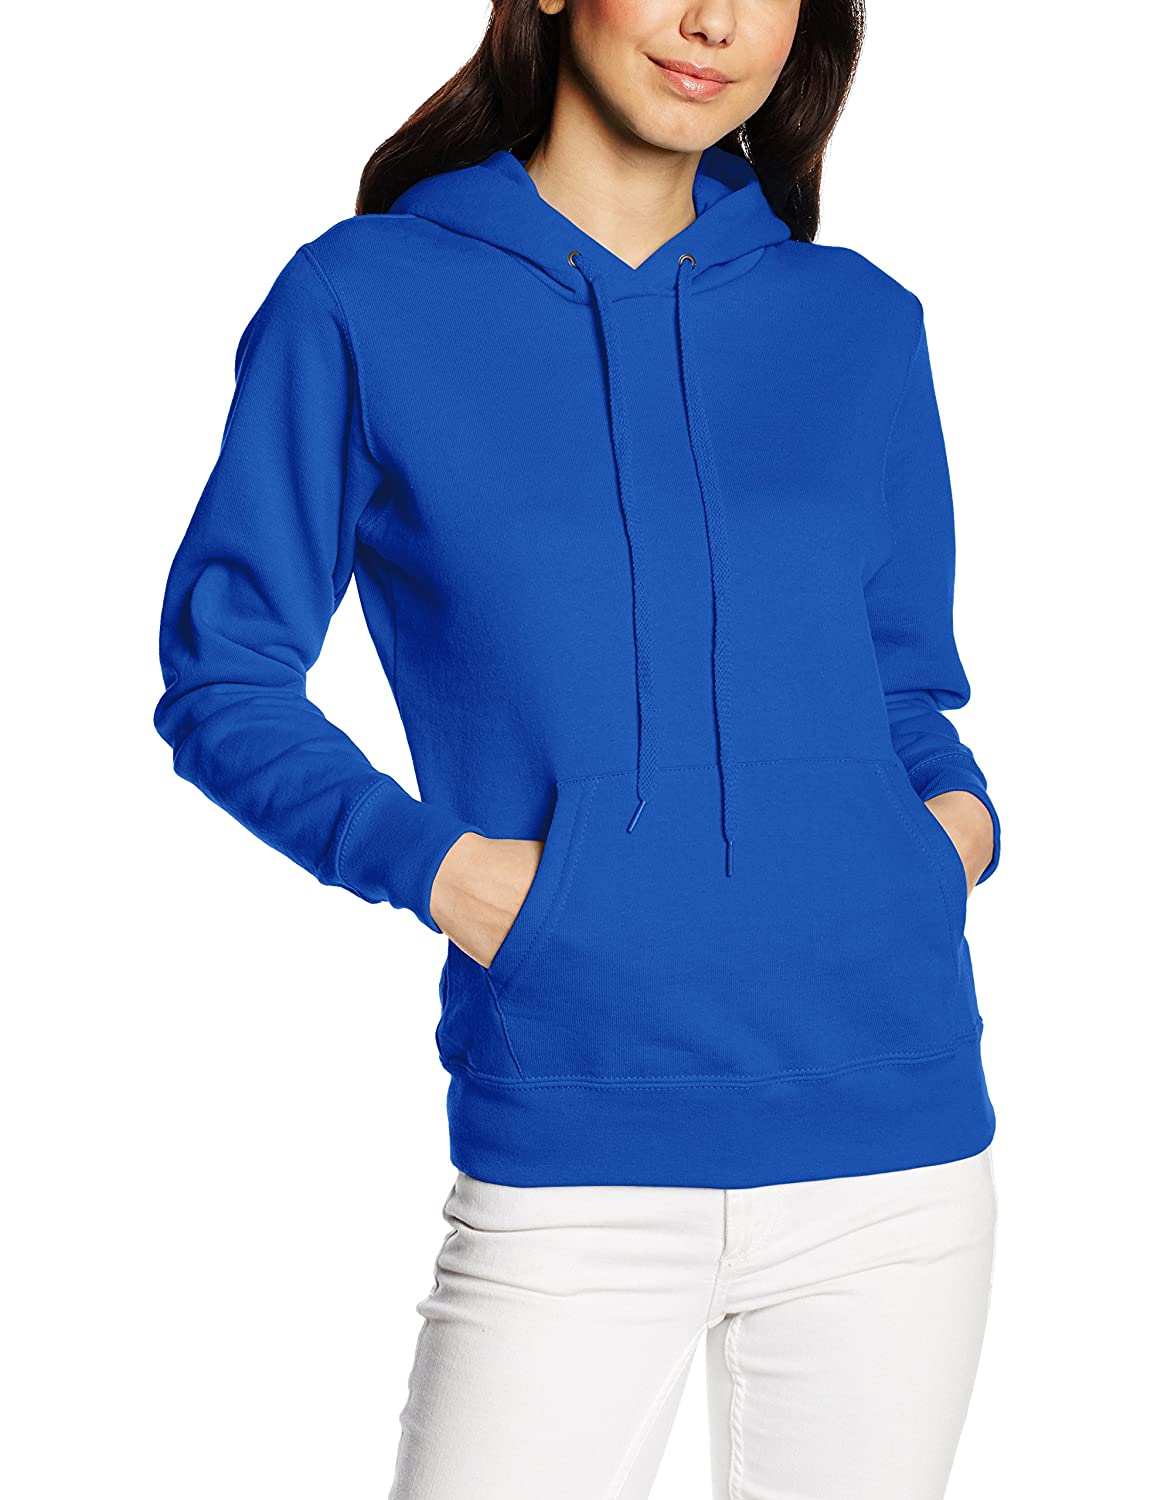 Fruit of the Loom Women's Pull-Over Classic Hooded Sweat 62-038-0